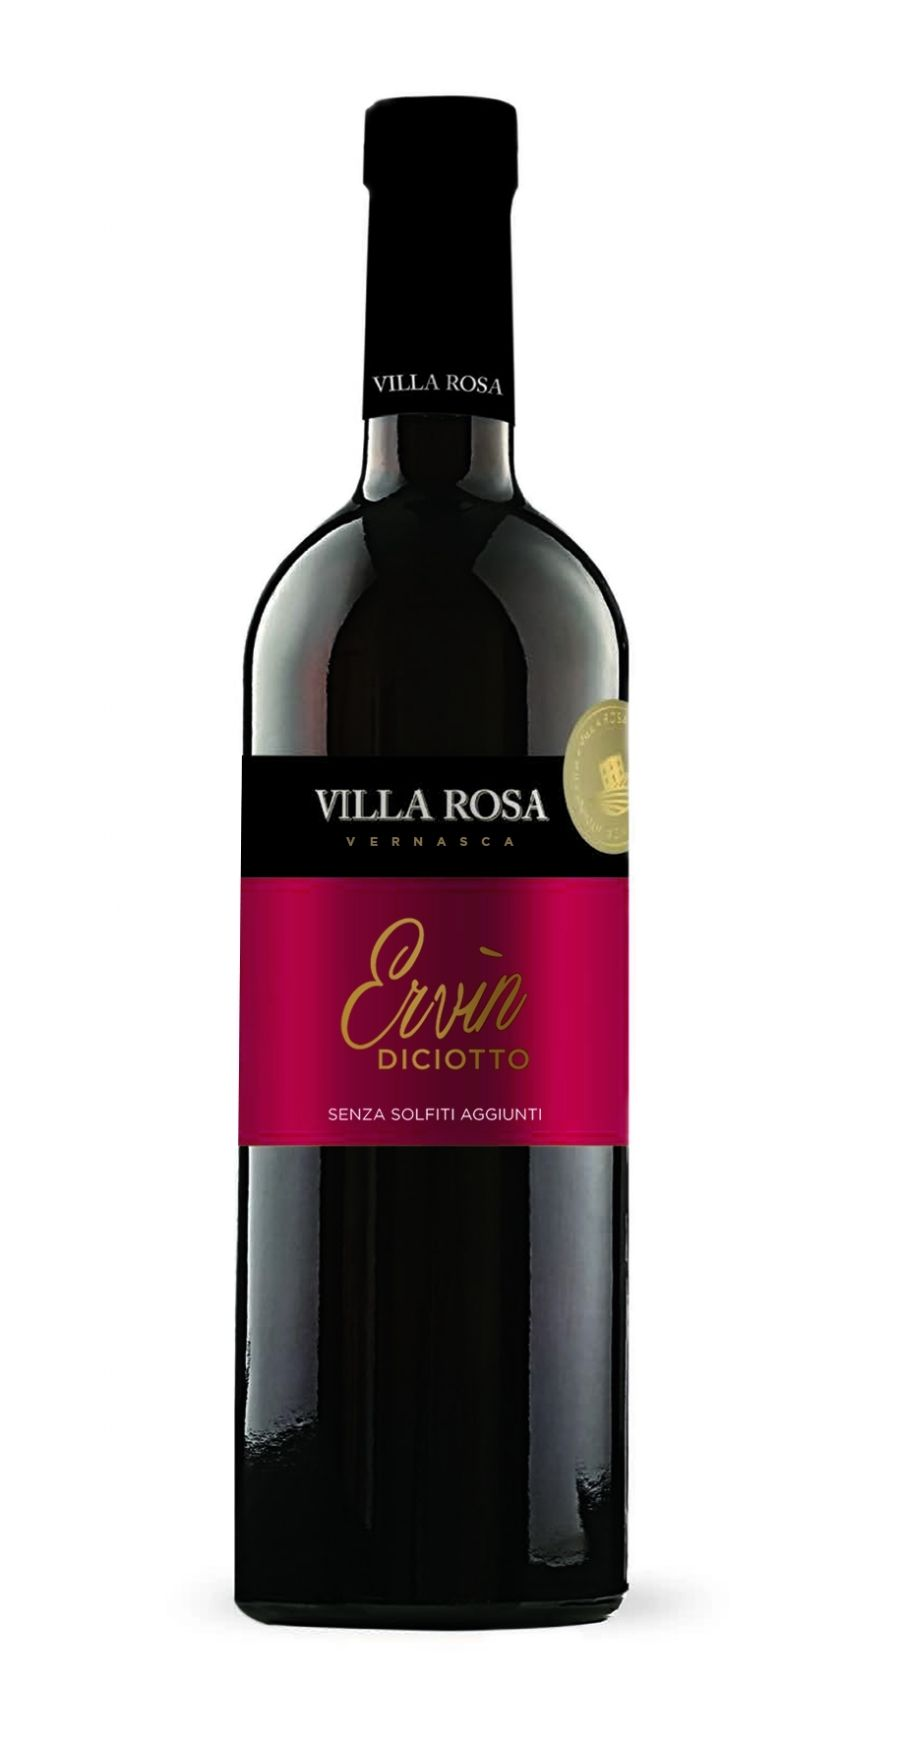 Ervin from the Villa Rosa winery